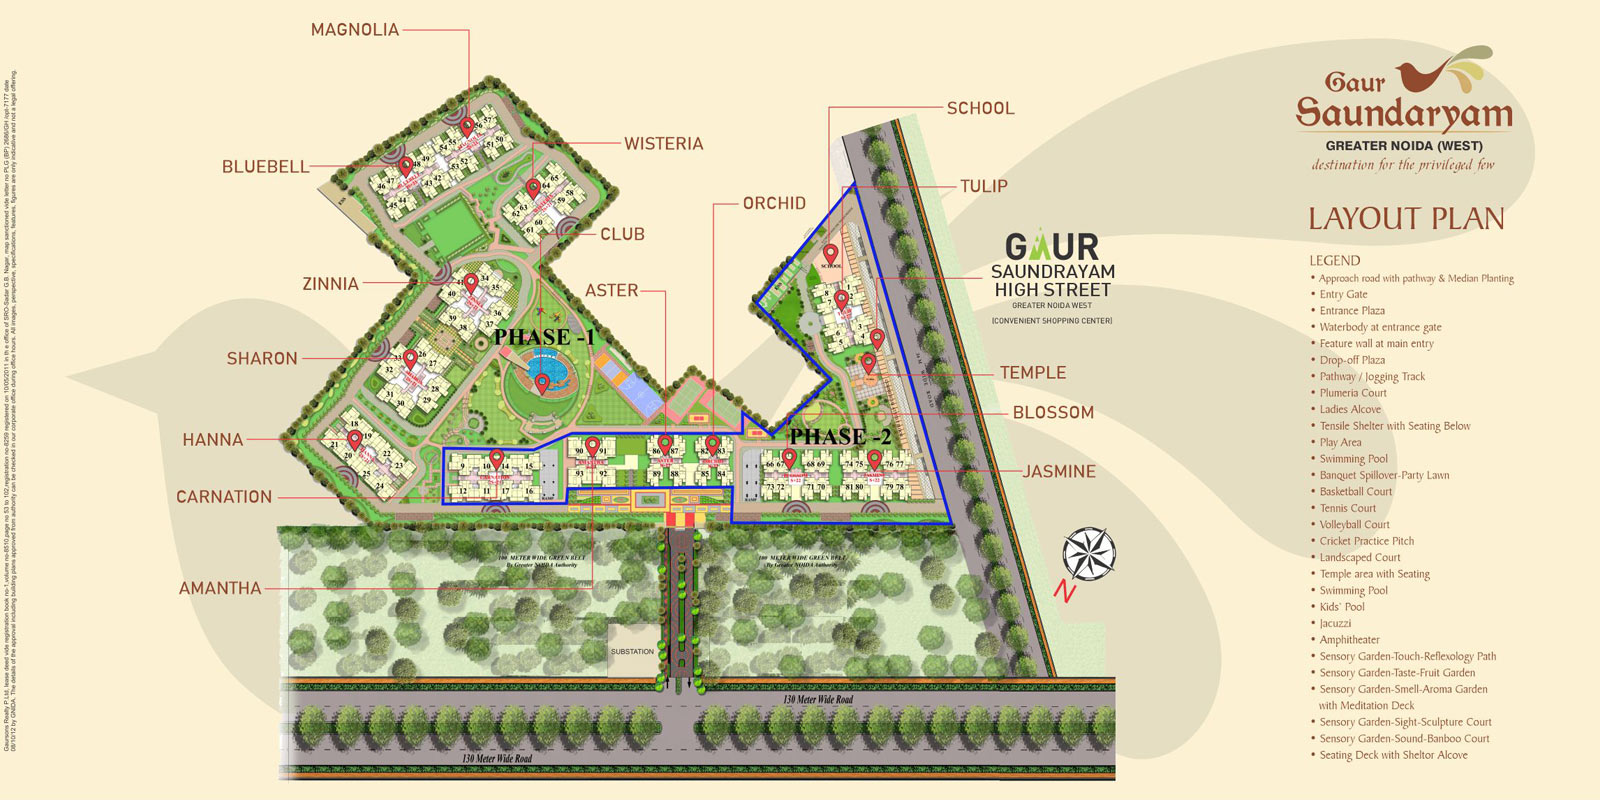 Gaurs apartments in Gr. Noida